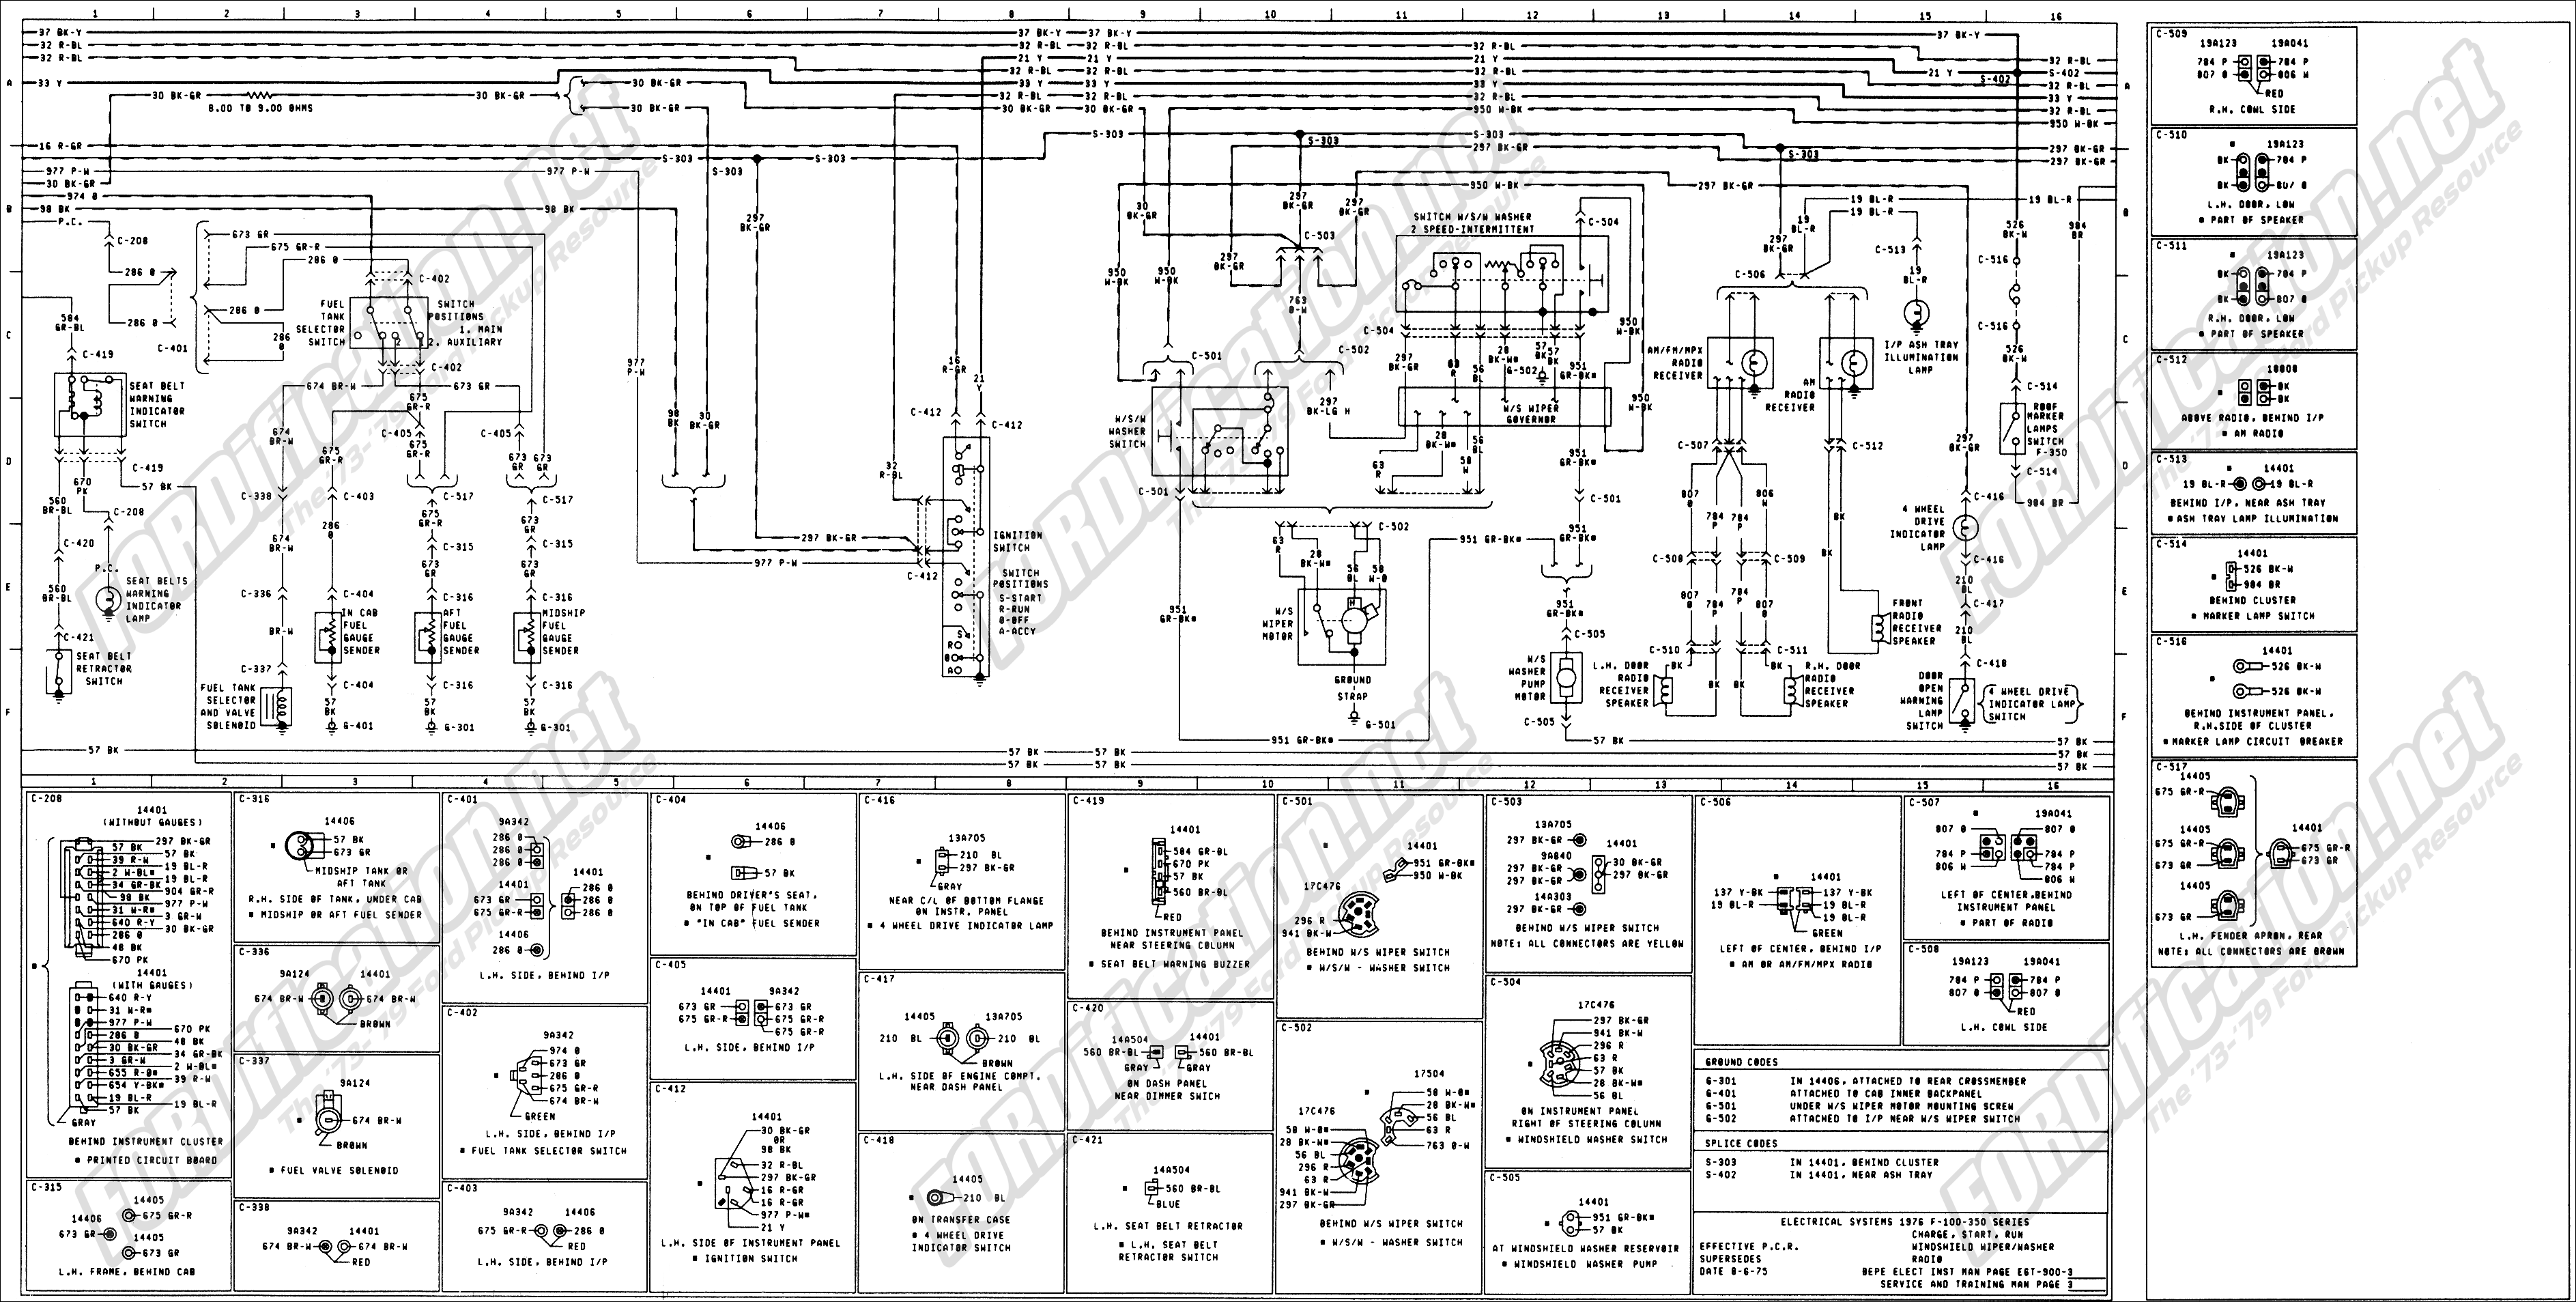 wiring_76master_3of9 1973 1979 ford truck wiring diagrams & schematics fordification net Ford 3 Wire Alternator Diagram at alyssarenee.co